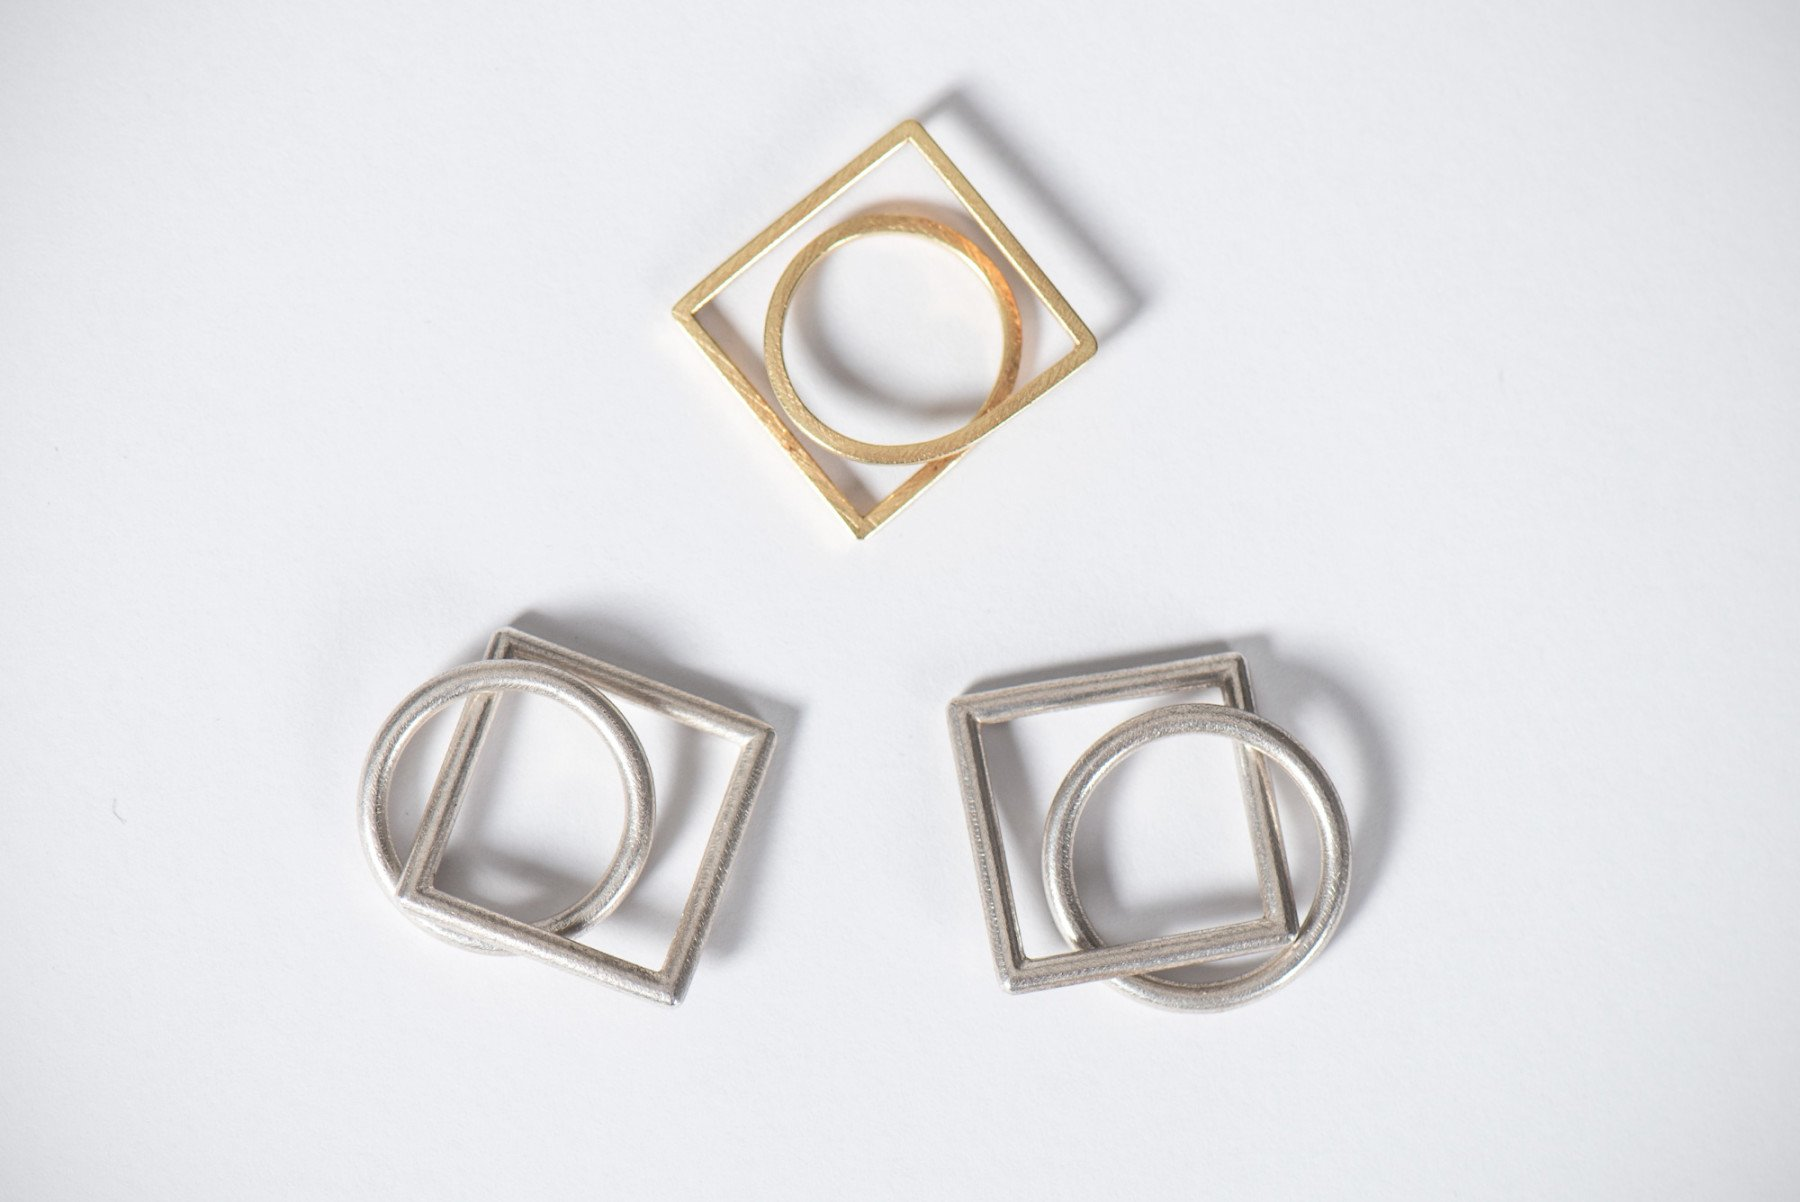 Karina Noyons |  Round about - Finger ring